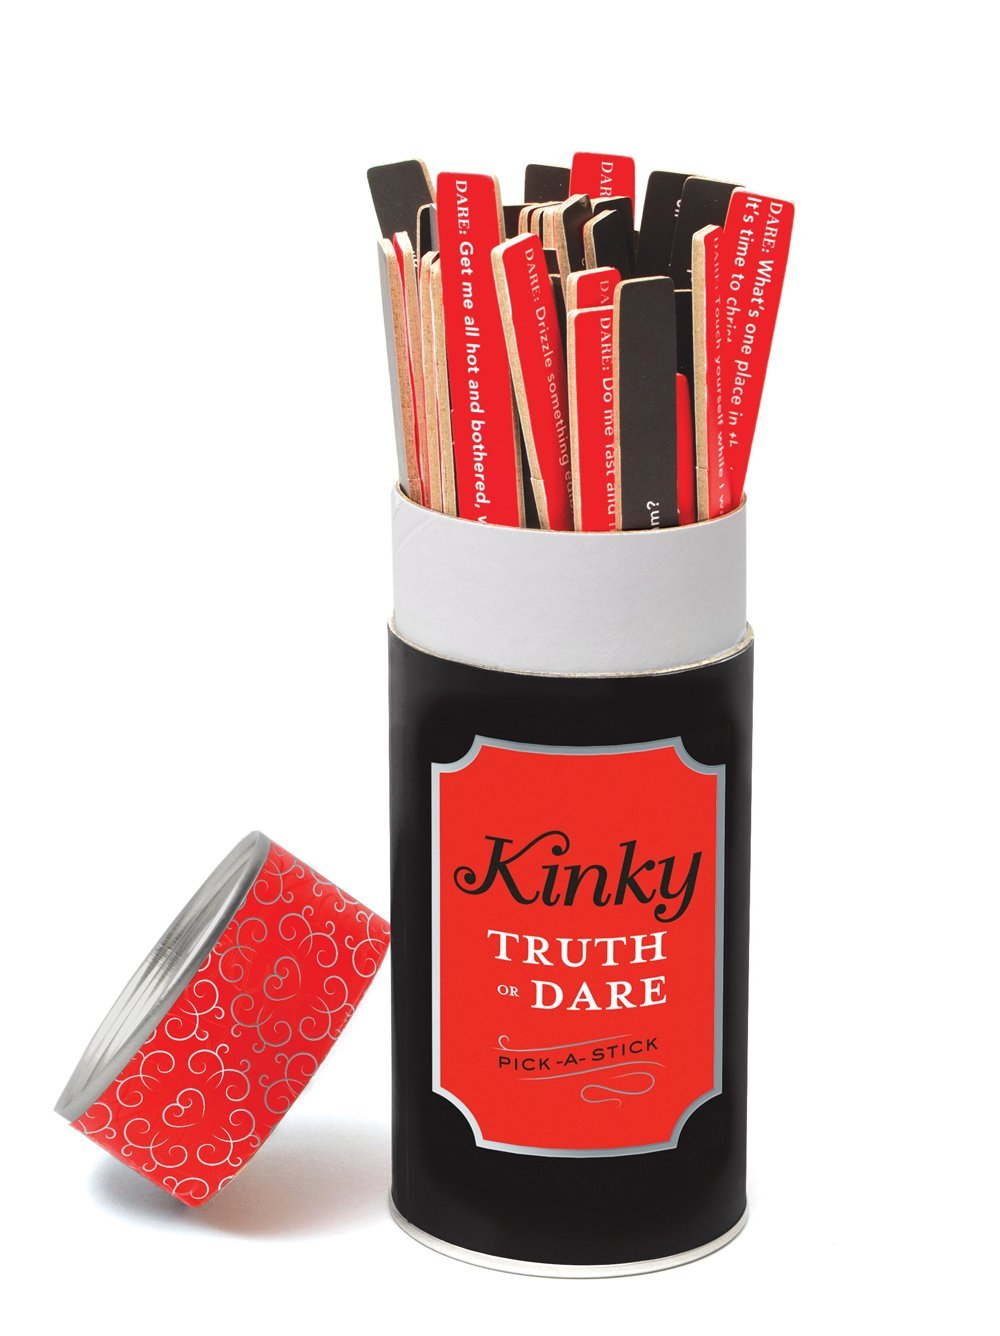 Kinky Truth or Dare Pick-A-Stick